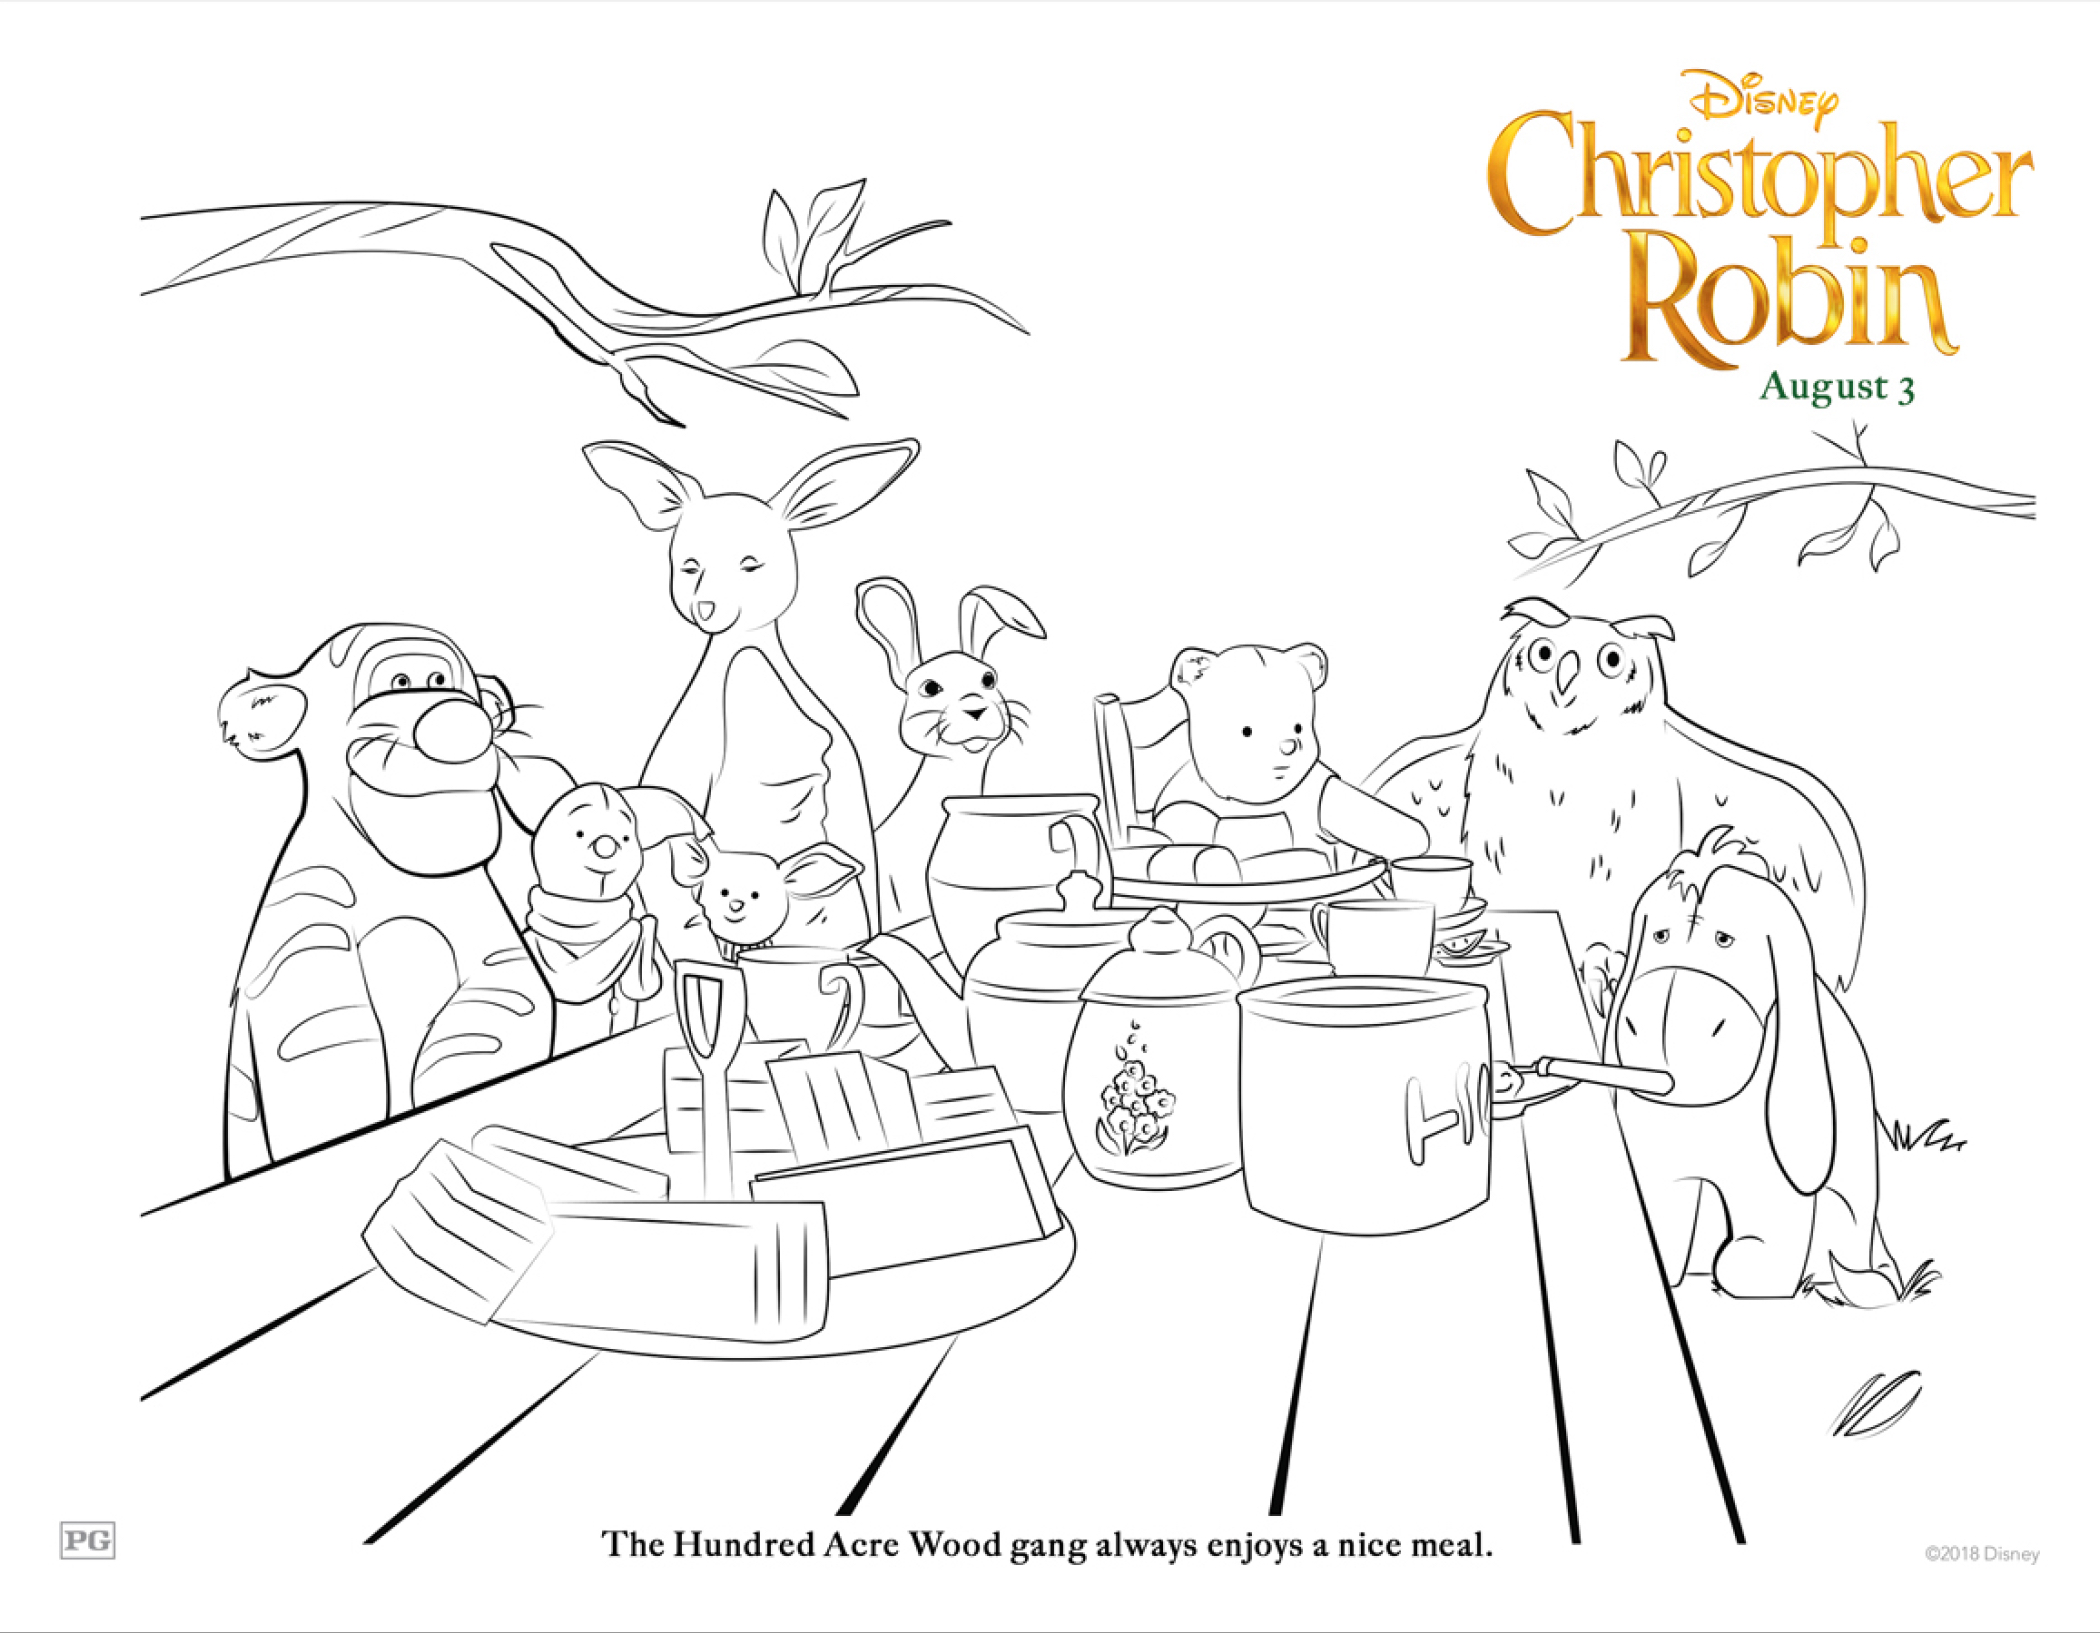 Disney S Christopher Robin Review Amp Activity Pages